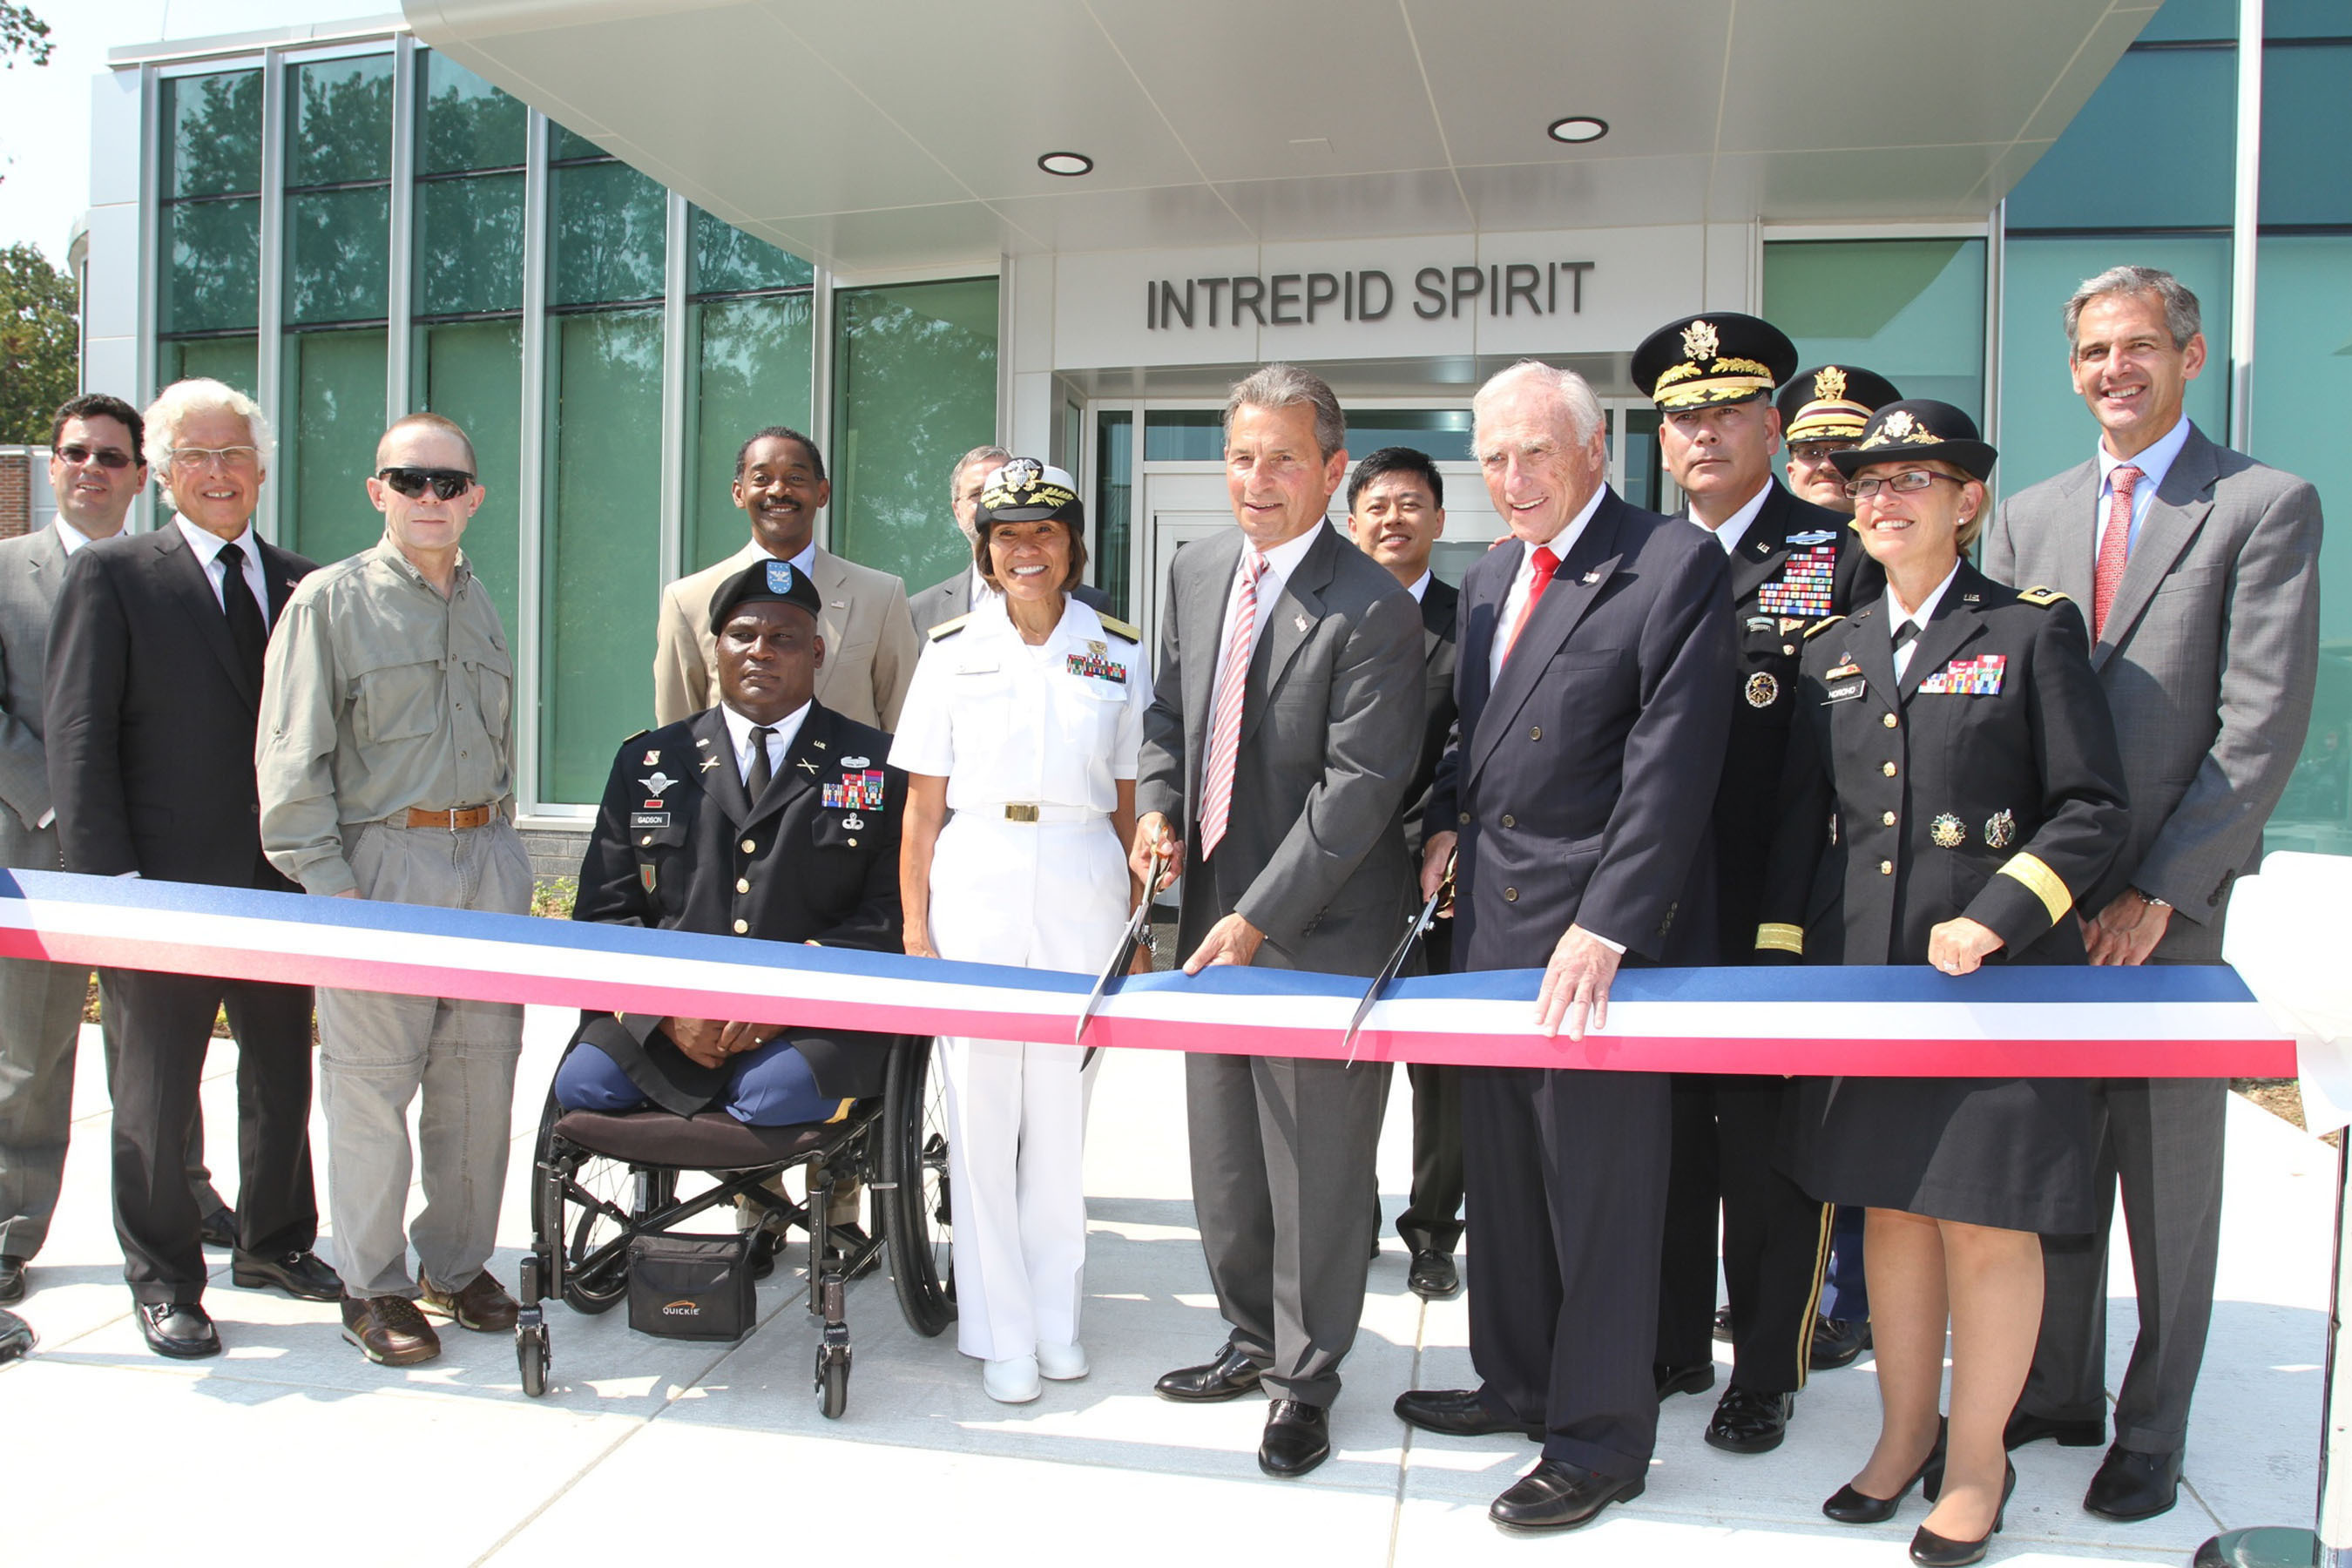 From left to right: Mr. Dave Winters, President of the Intrepid Fallen Heroes Fund; Mr. Martin Edelman, Trustee, Intrepid Fallen Heroes Fund; SGM Robert Haemmerle, Army; COL. Gregory Gadson, Garrison Commander, Ft. Belvoir; Dr. Jonathan Woodson, Assistant Secretary of Defense Health Affairs and Director of TRICARE Management Activity; ADM Raquel Bono, Commander of Joint Task Force National Capital Region Medical; *in background: Dr. Jim Kelly, Director of the National Intrepid Center of Excellence; Mr. Rich Santulli, Chairman, Intrepid Fallen Heroes Fund; Mr. Arnold Fisher, Honorary Chairman, Intrepid Fallen Heroes Fund; *in background: Dr. Heechin Chae, Director, Intrepid Spirit; GEN John Campbell, Vice Chief of Staff of the Army; LTG Patricia Horoho, Surgeon General of the Army; COL Charles Callahan, Commander, Ft Belvoir Hospital; Mr. Horoho. (PRNewsFoto/Intrepid Fallen Heroes Fund) (PRNewsFoto/INTREPID FALLEN HEROES FUND)